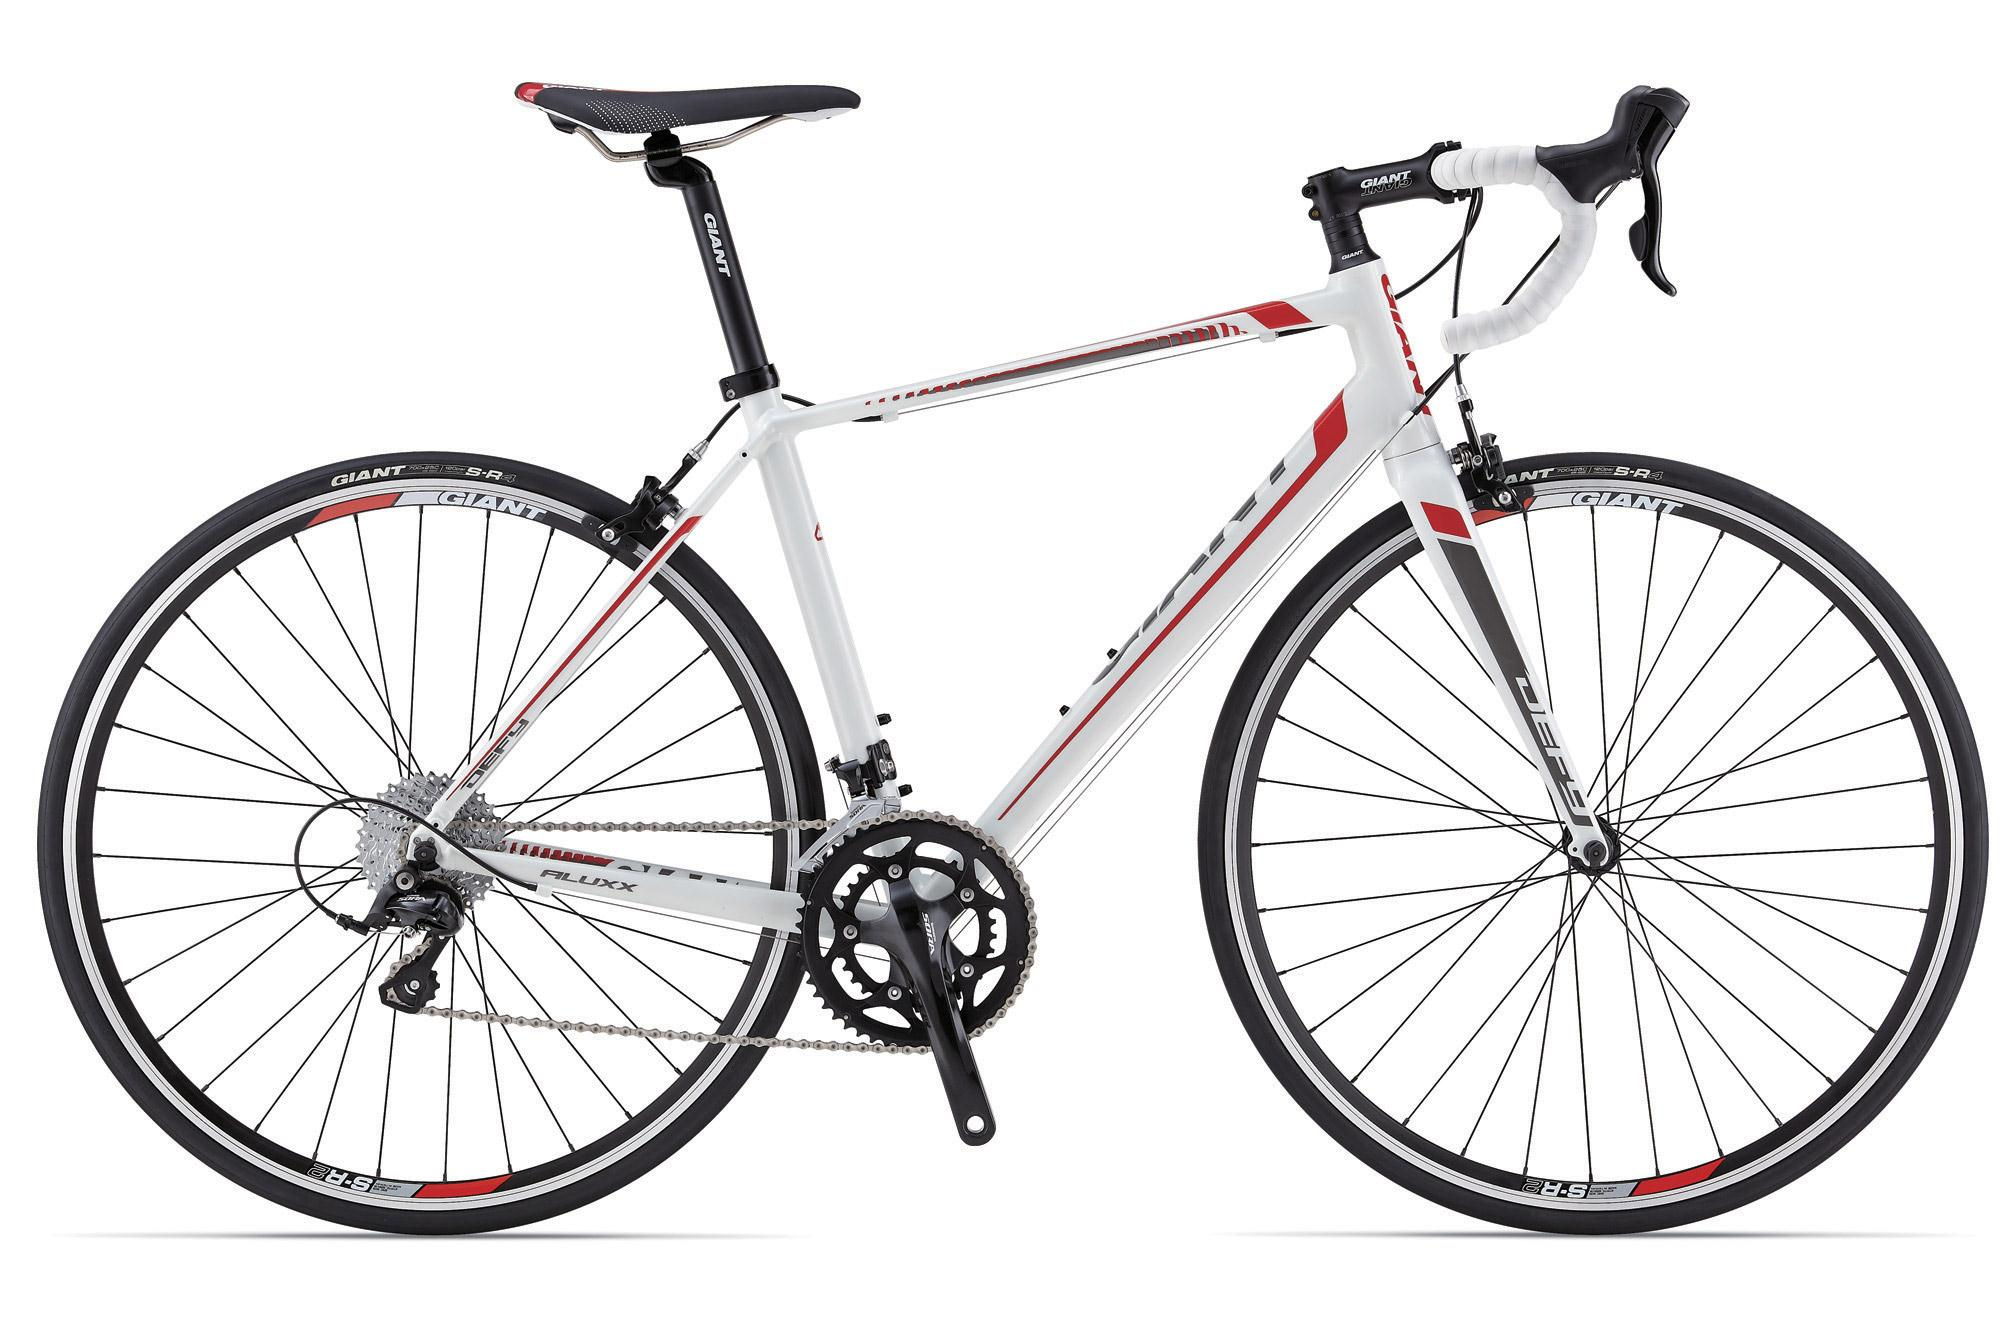 Giant Defy 3 Road Bike hire